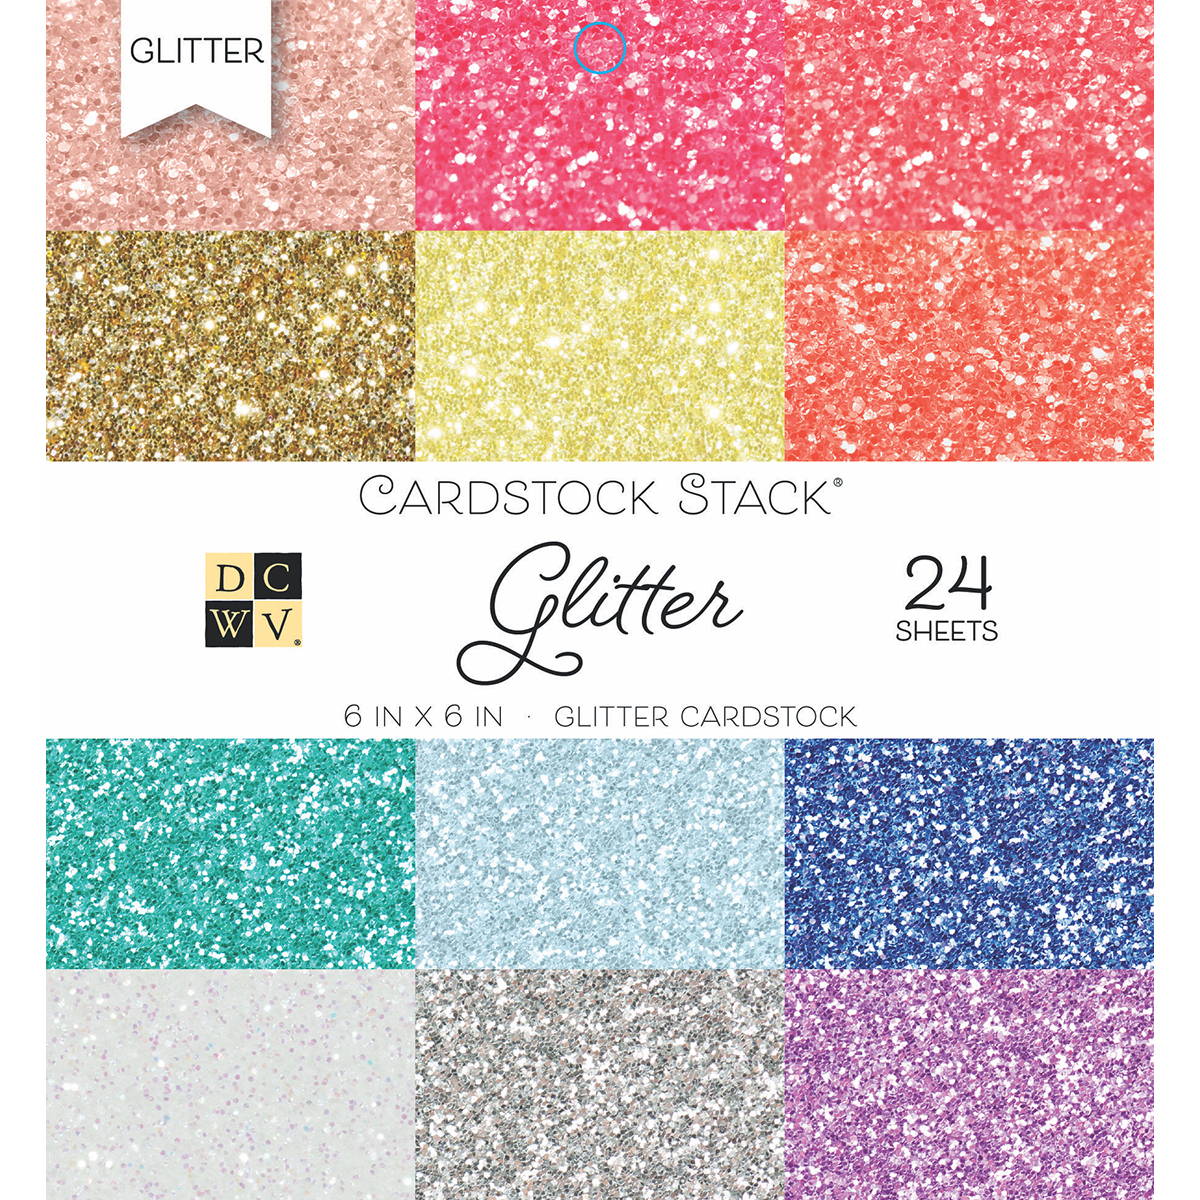 DCWV Single-Sided Cardstock Stack 6X6 24/Pkg-Glitter 12 Colors/2 Each